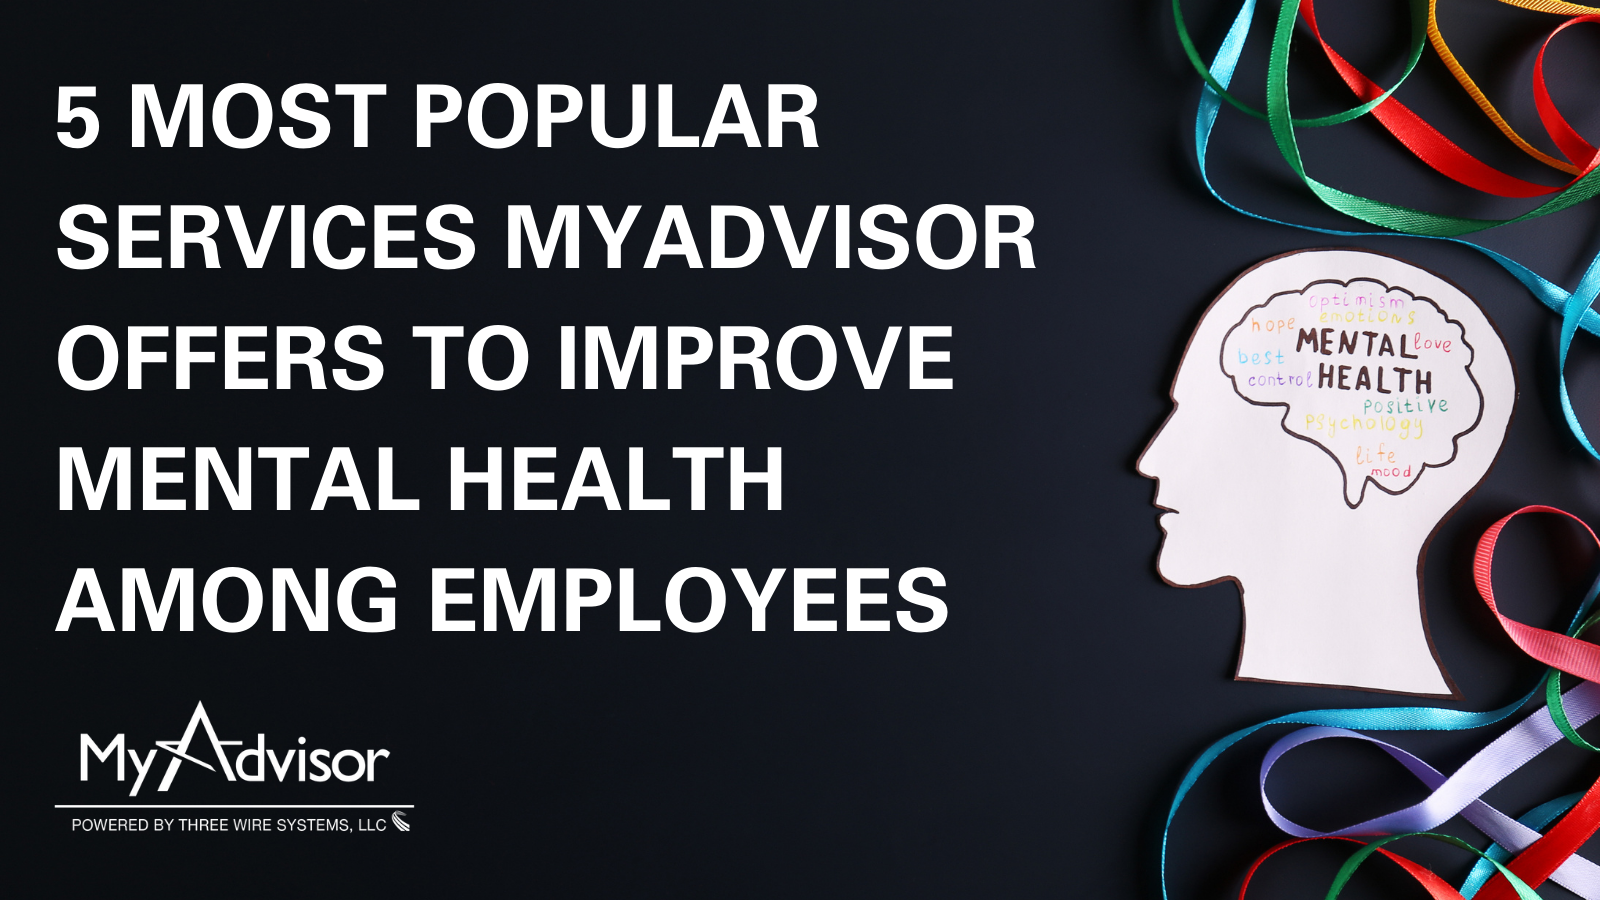 5 most popular services MyAdvisor offers to improve mental health